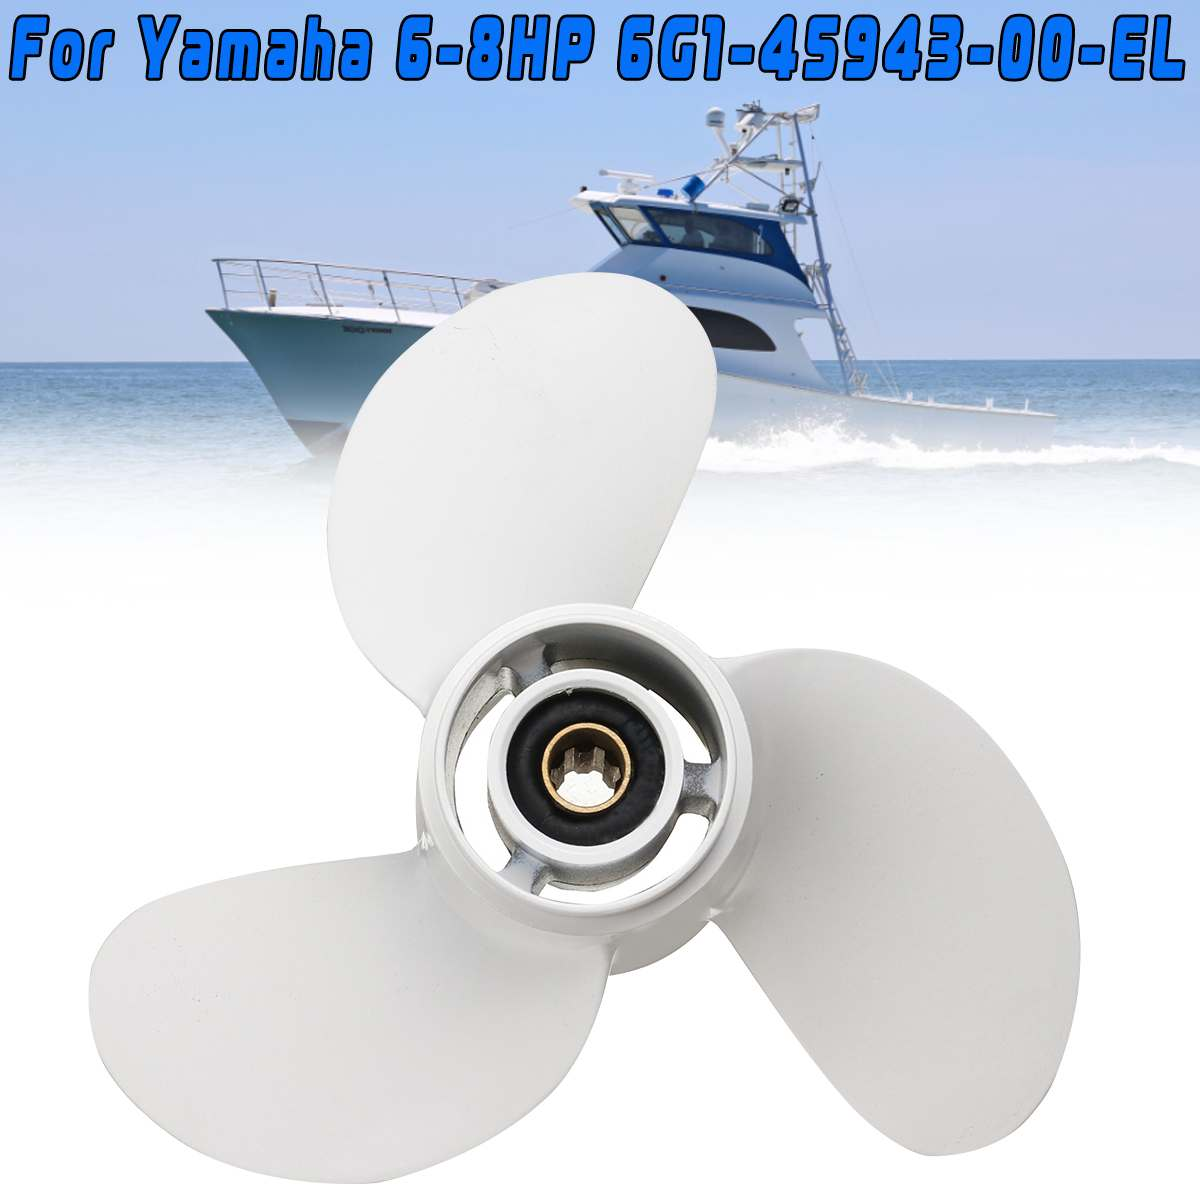 Boat Propeller 6G1-45943-00-EL 8 1/2 x 7 1/2 For Yamaha Outboard Engine 6-8HP Aluminum Alloy 7 Spline Tooths 3 Blades R RotationBoat Propeller 6G1-45943-00-EL 8 1/2 x 7 1/2 For Yamaha Outboard Engine 6-8HP Aluminum Alloy 7 Spline Tooths 3 Blades R Rotation